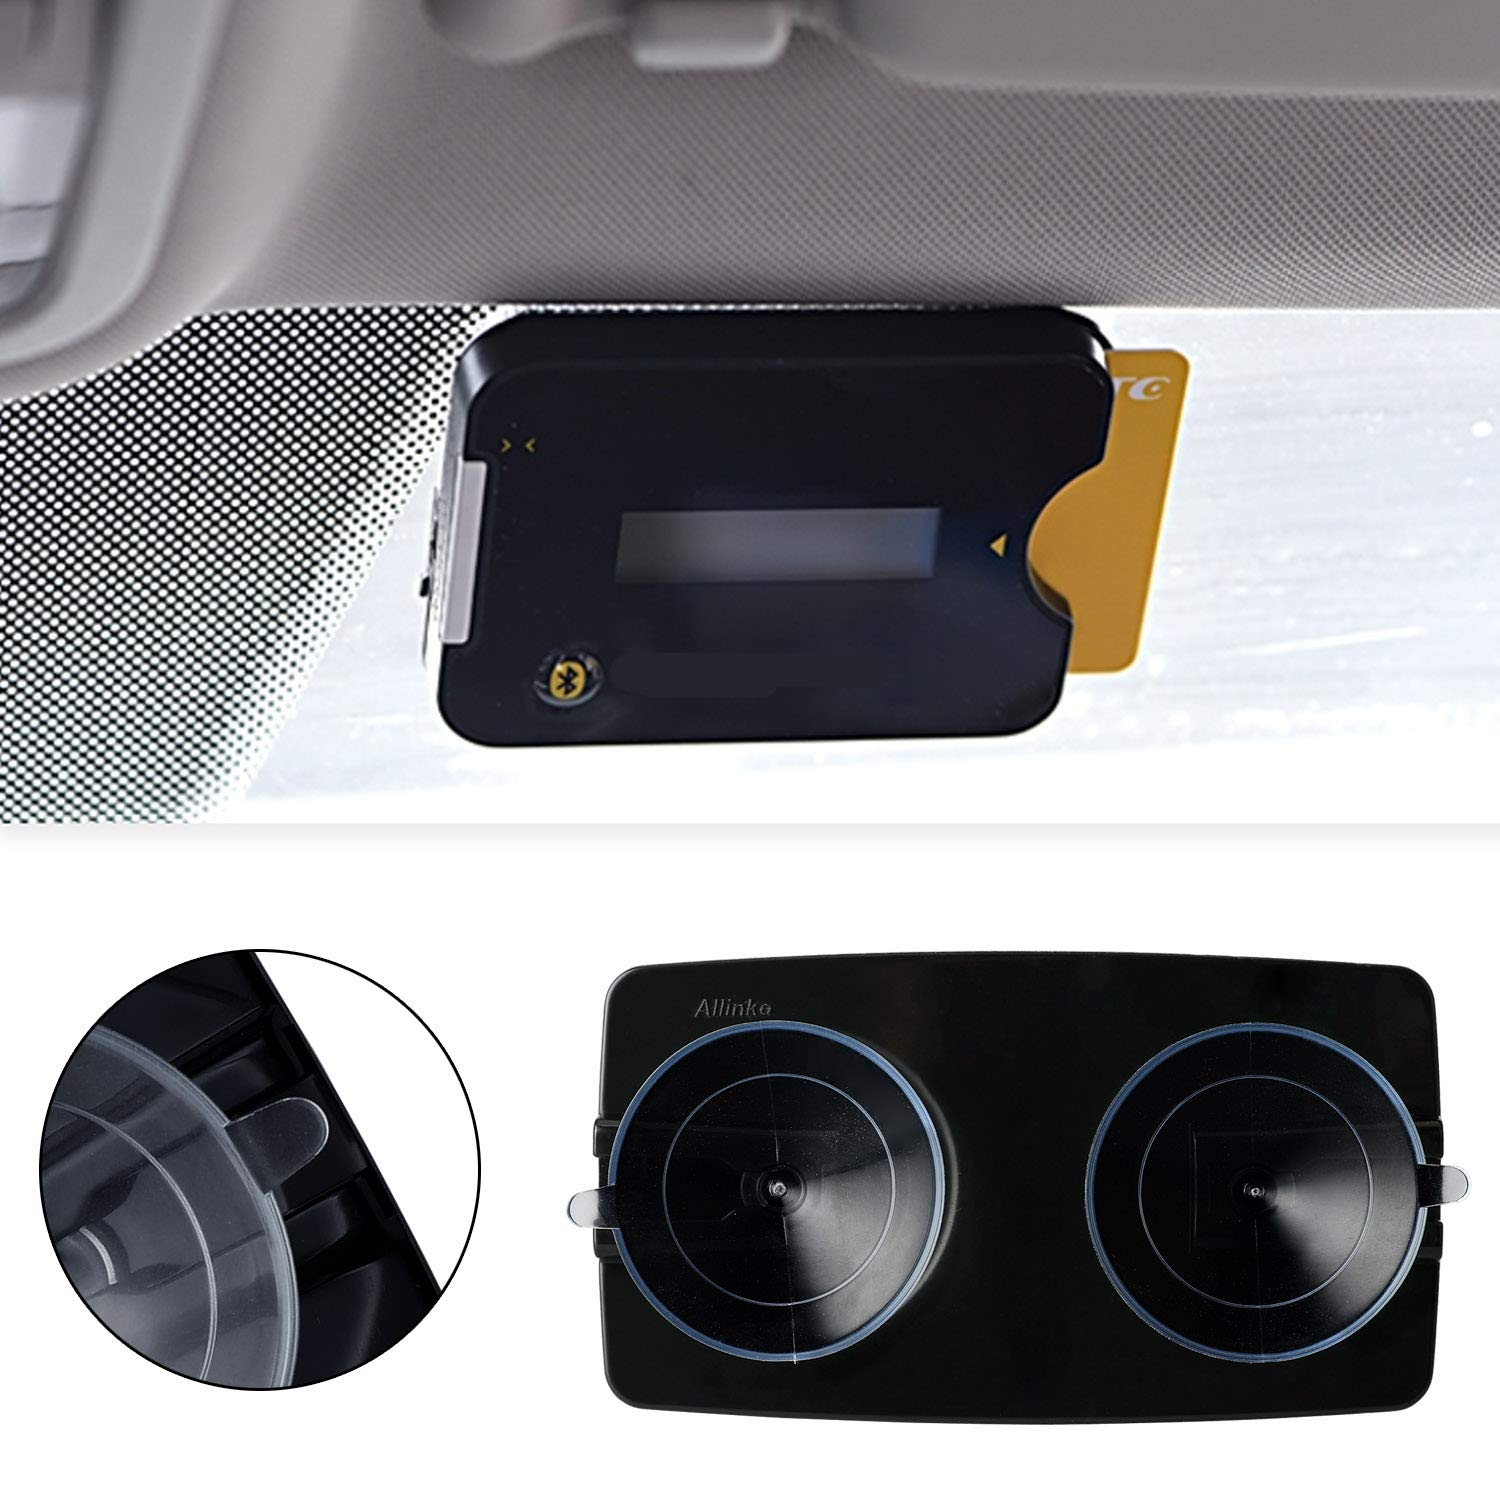 Quick Zoom Mounting Strips Included Allino Toll Pass Holder FasTrak Allinko Holder for EZ PrePass Fast Lane Elite Pass Windshield Fits All New Toll Transponders PalPass